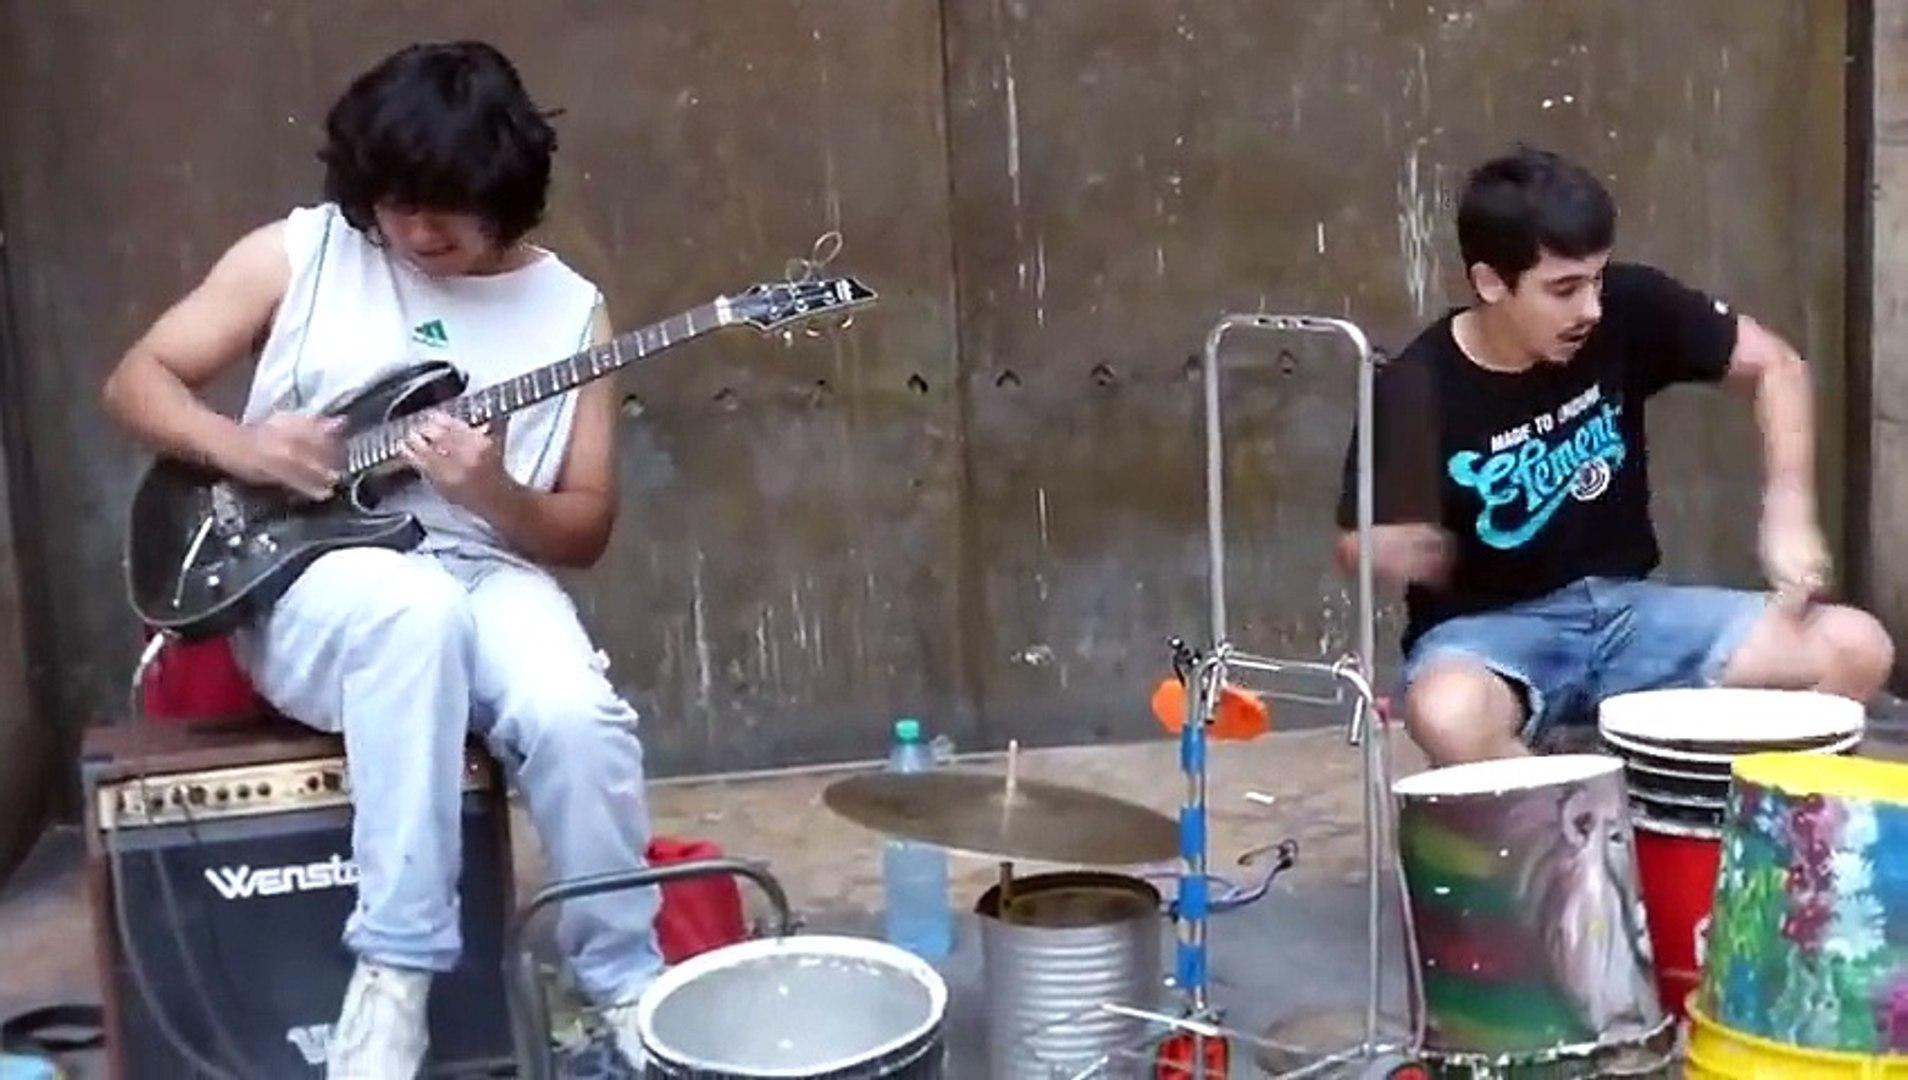 Street musicians cover Dire strait - Stunning performance